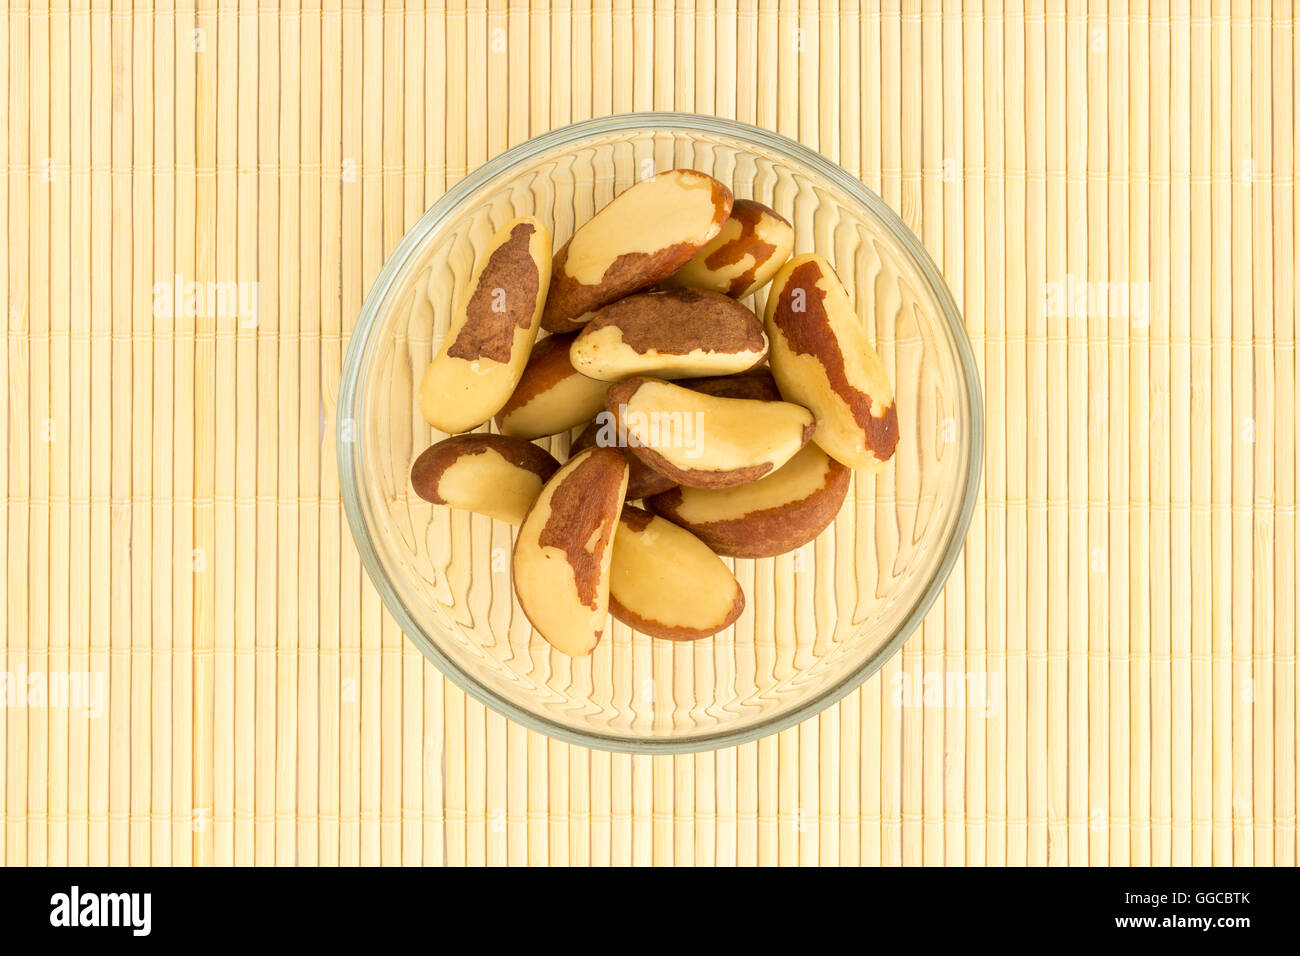 Glass bowl with Brazil Nuts over bambo mat. This nut is rich source of selenium and natural antioxidant. - Stock Image